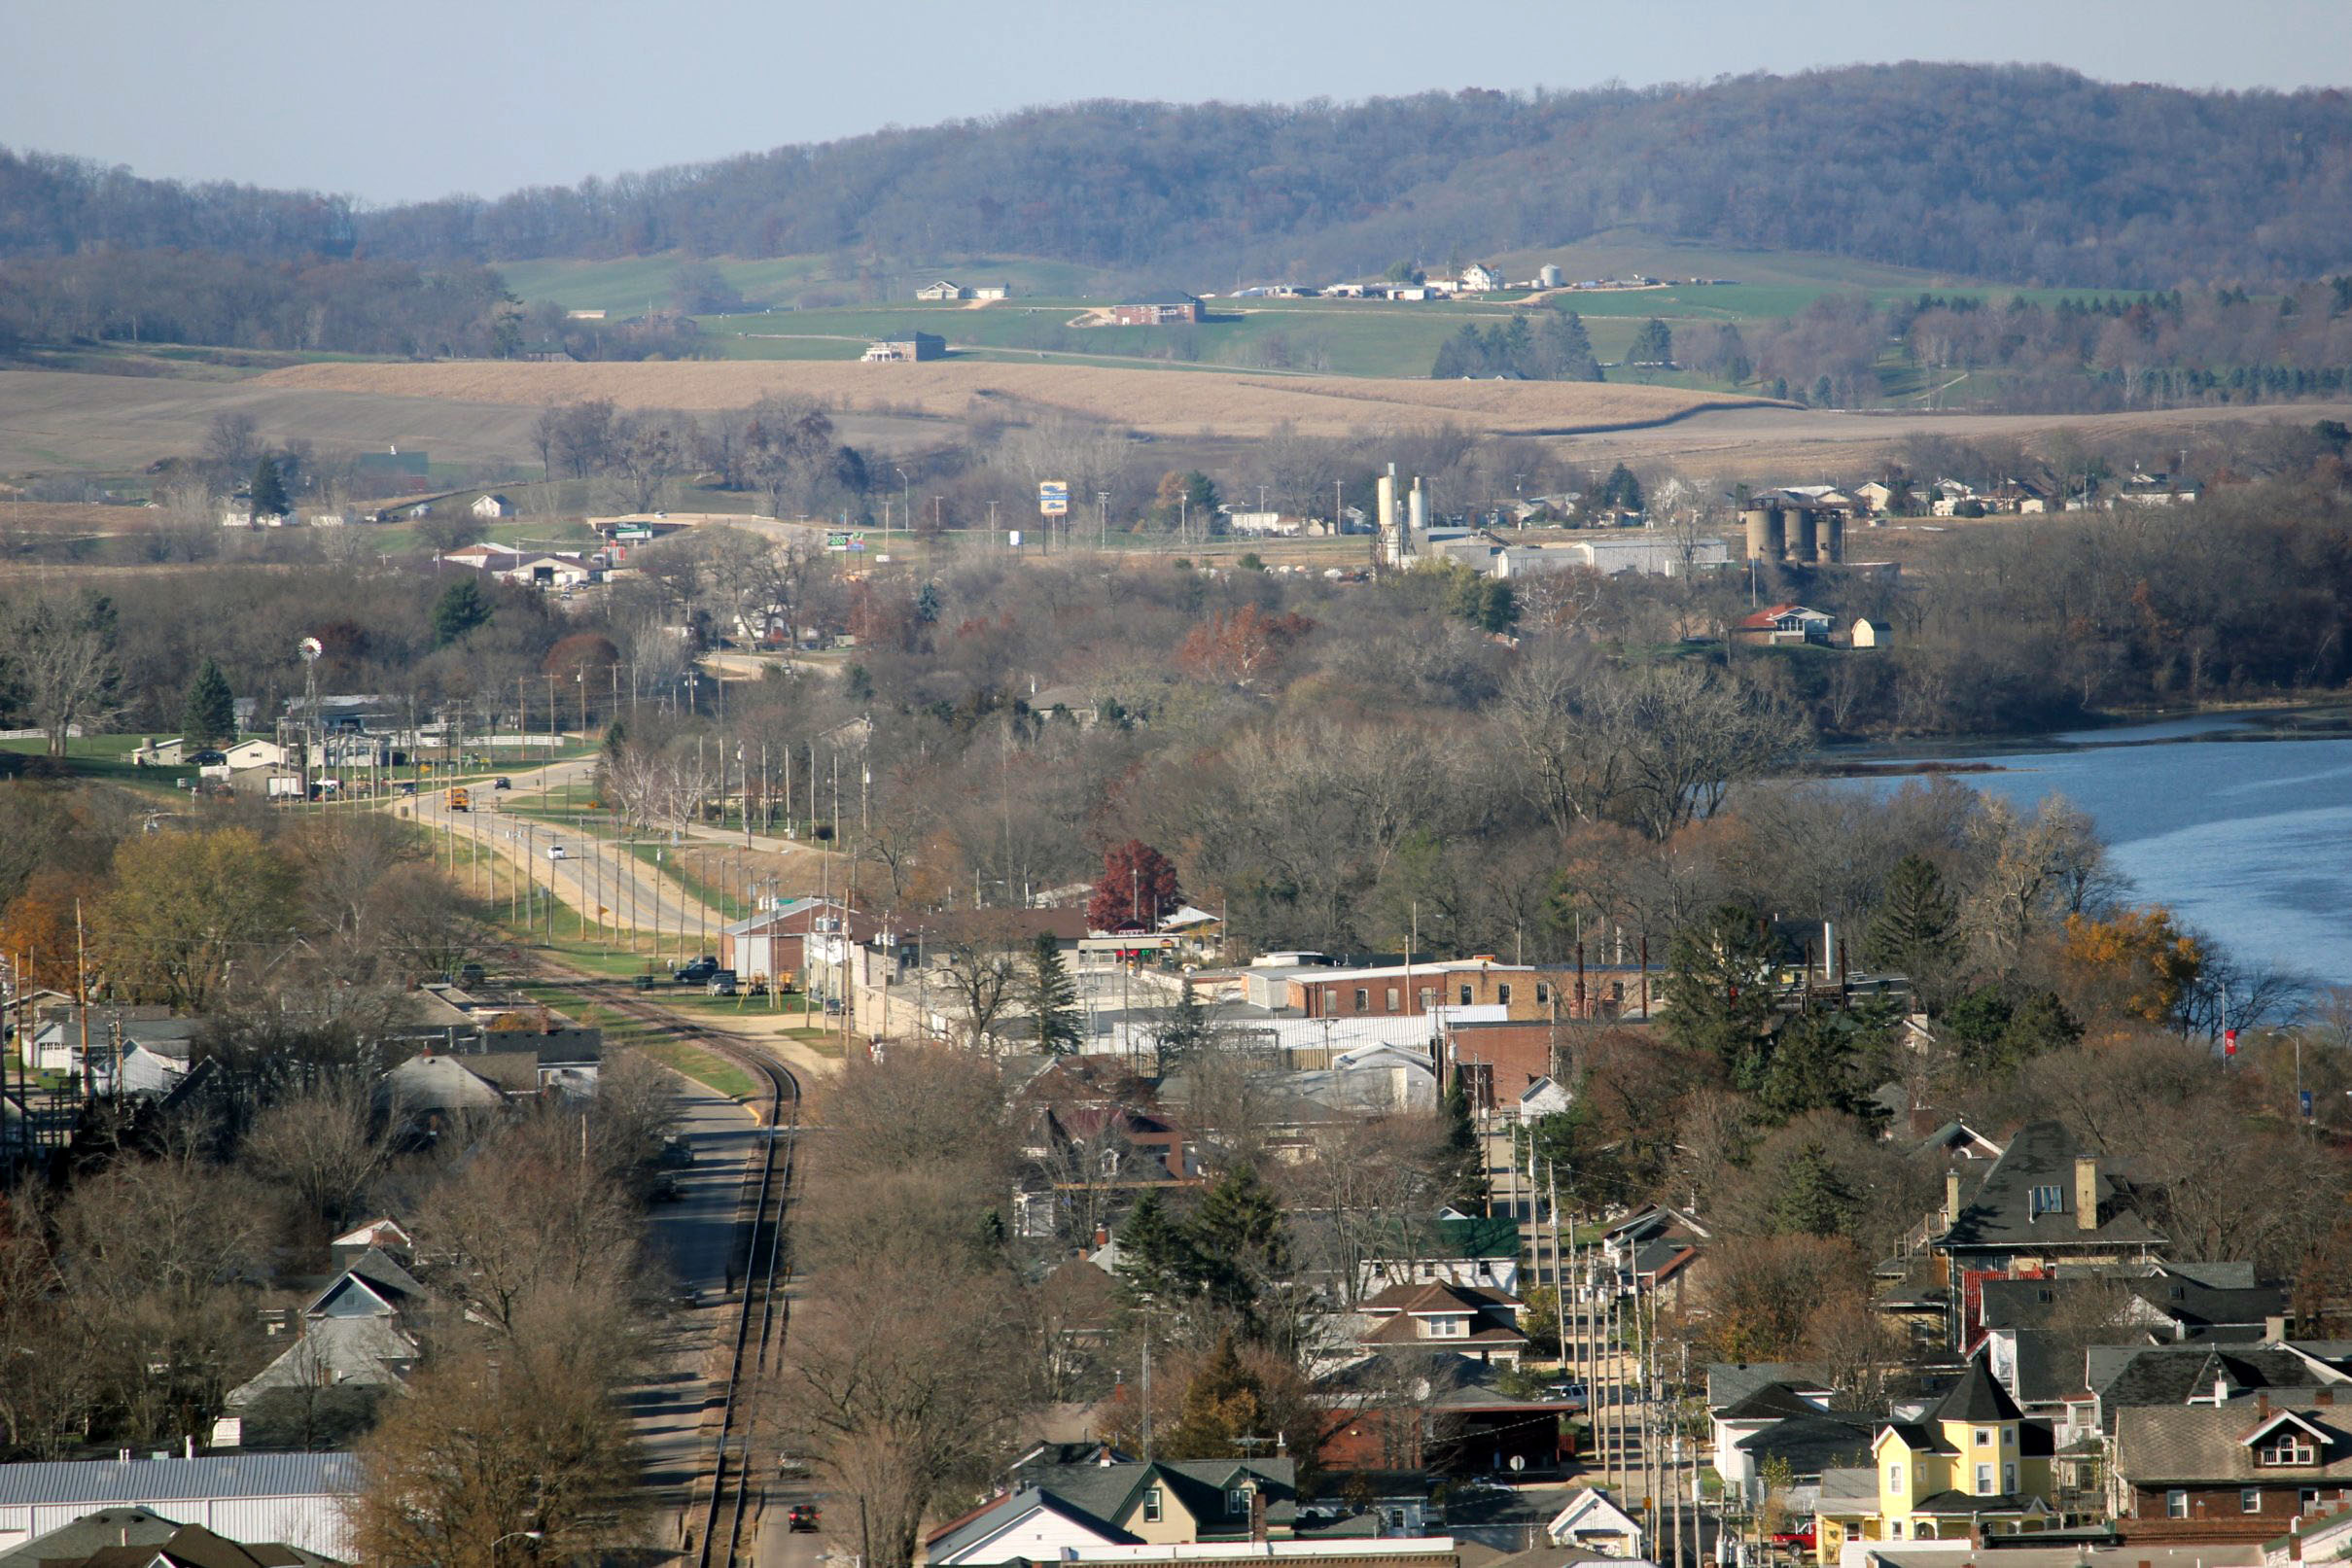 View of the town and hills beyond at Bellevue State Park, Iowa.